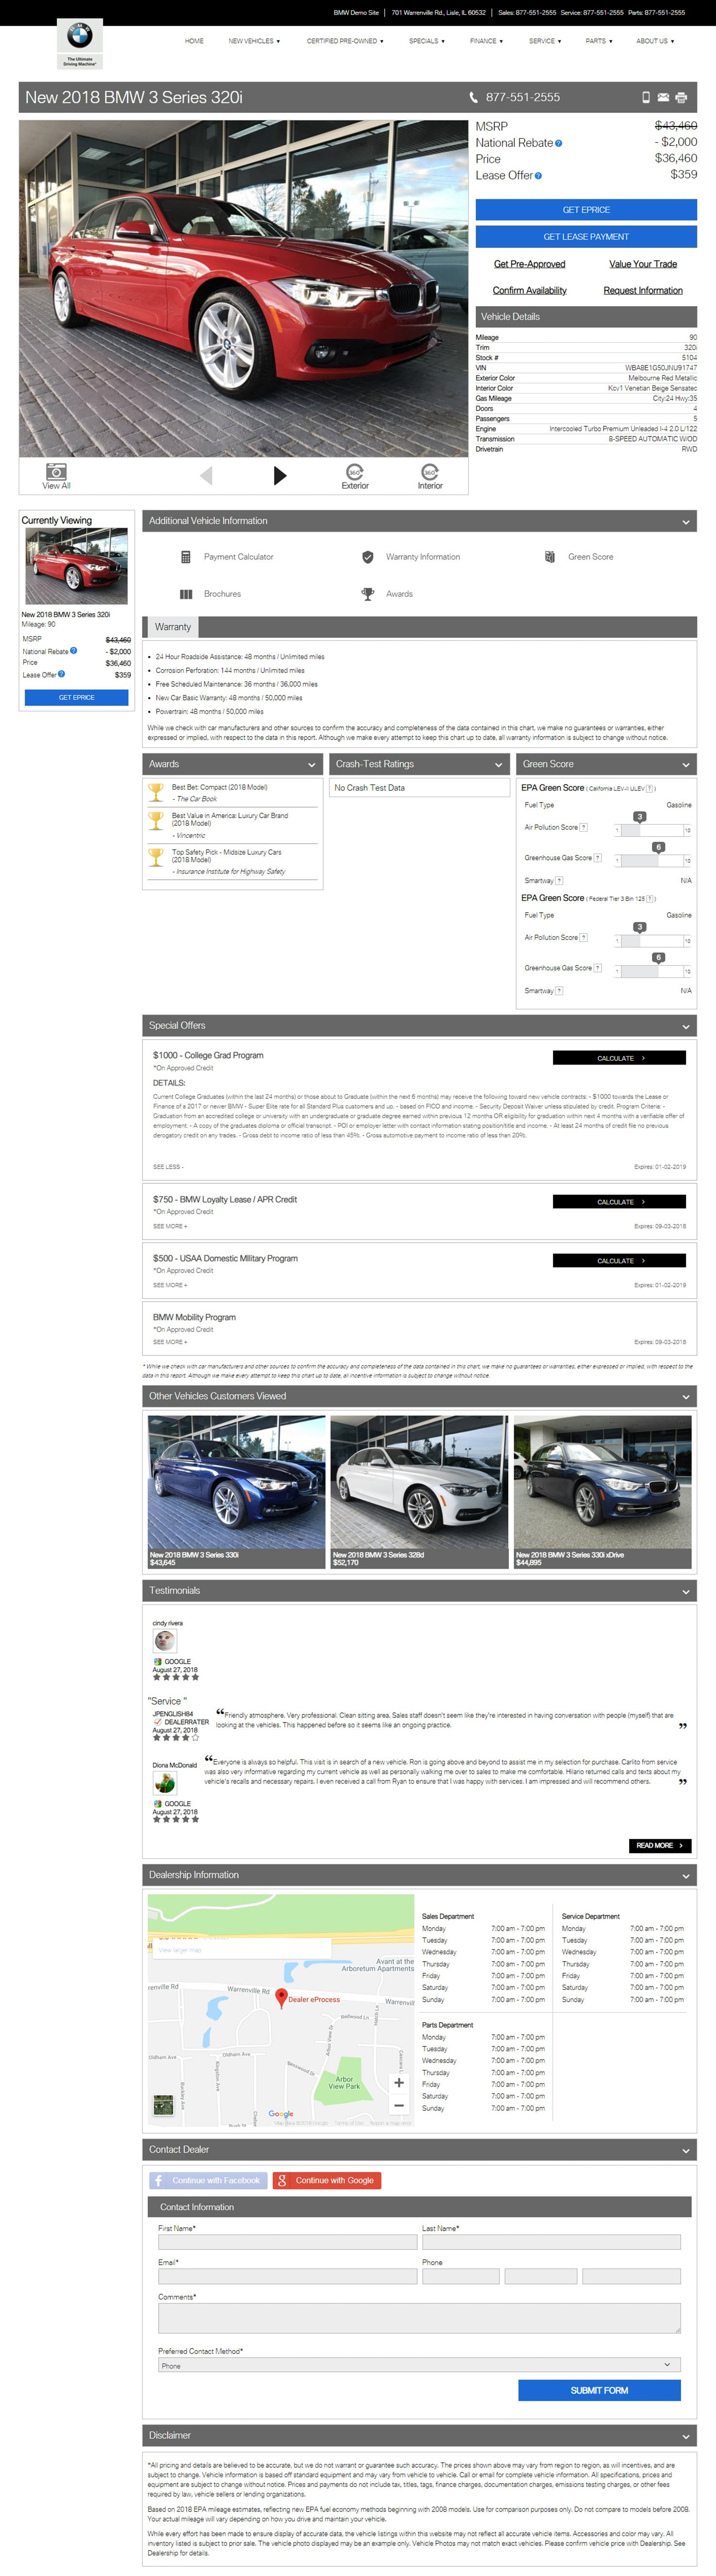 BMW VDP full page image